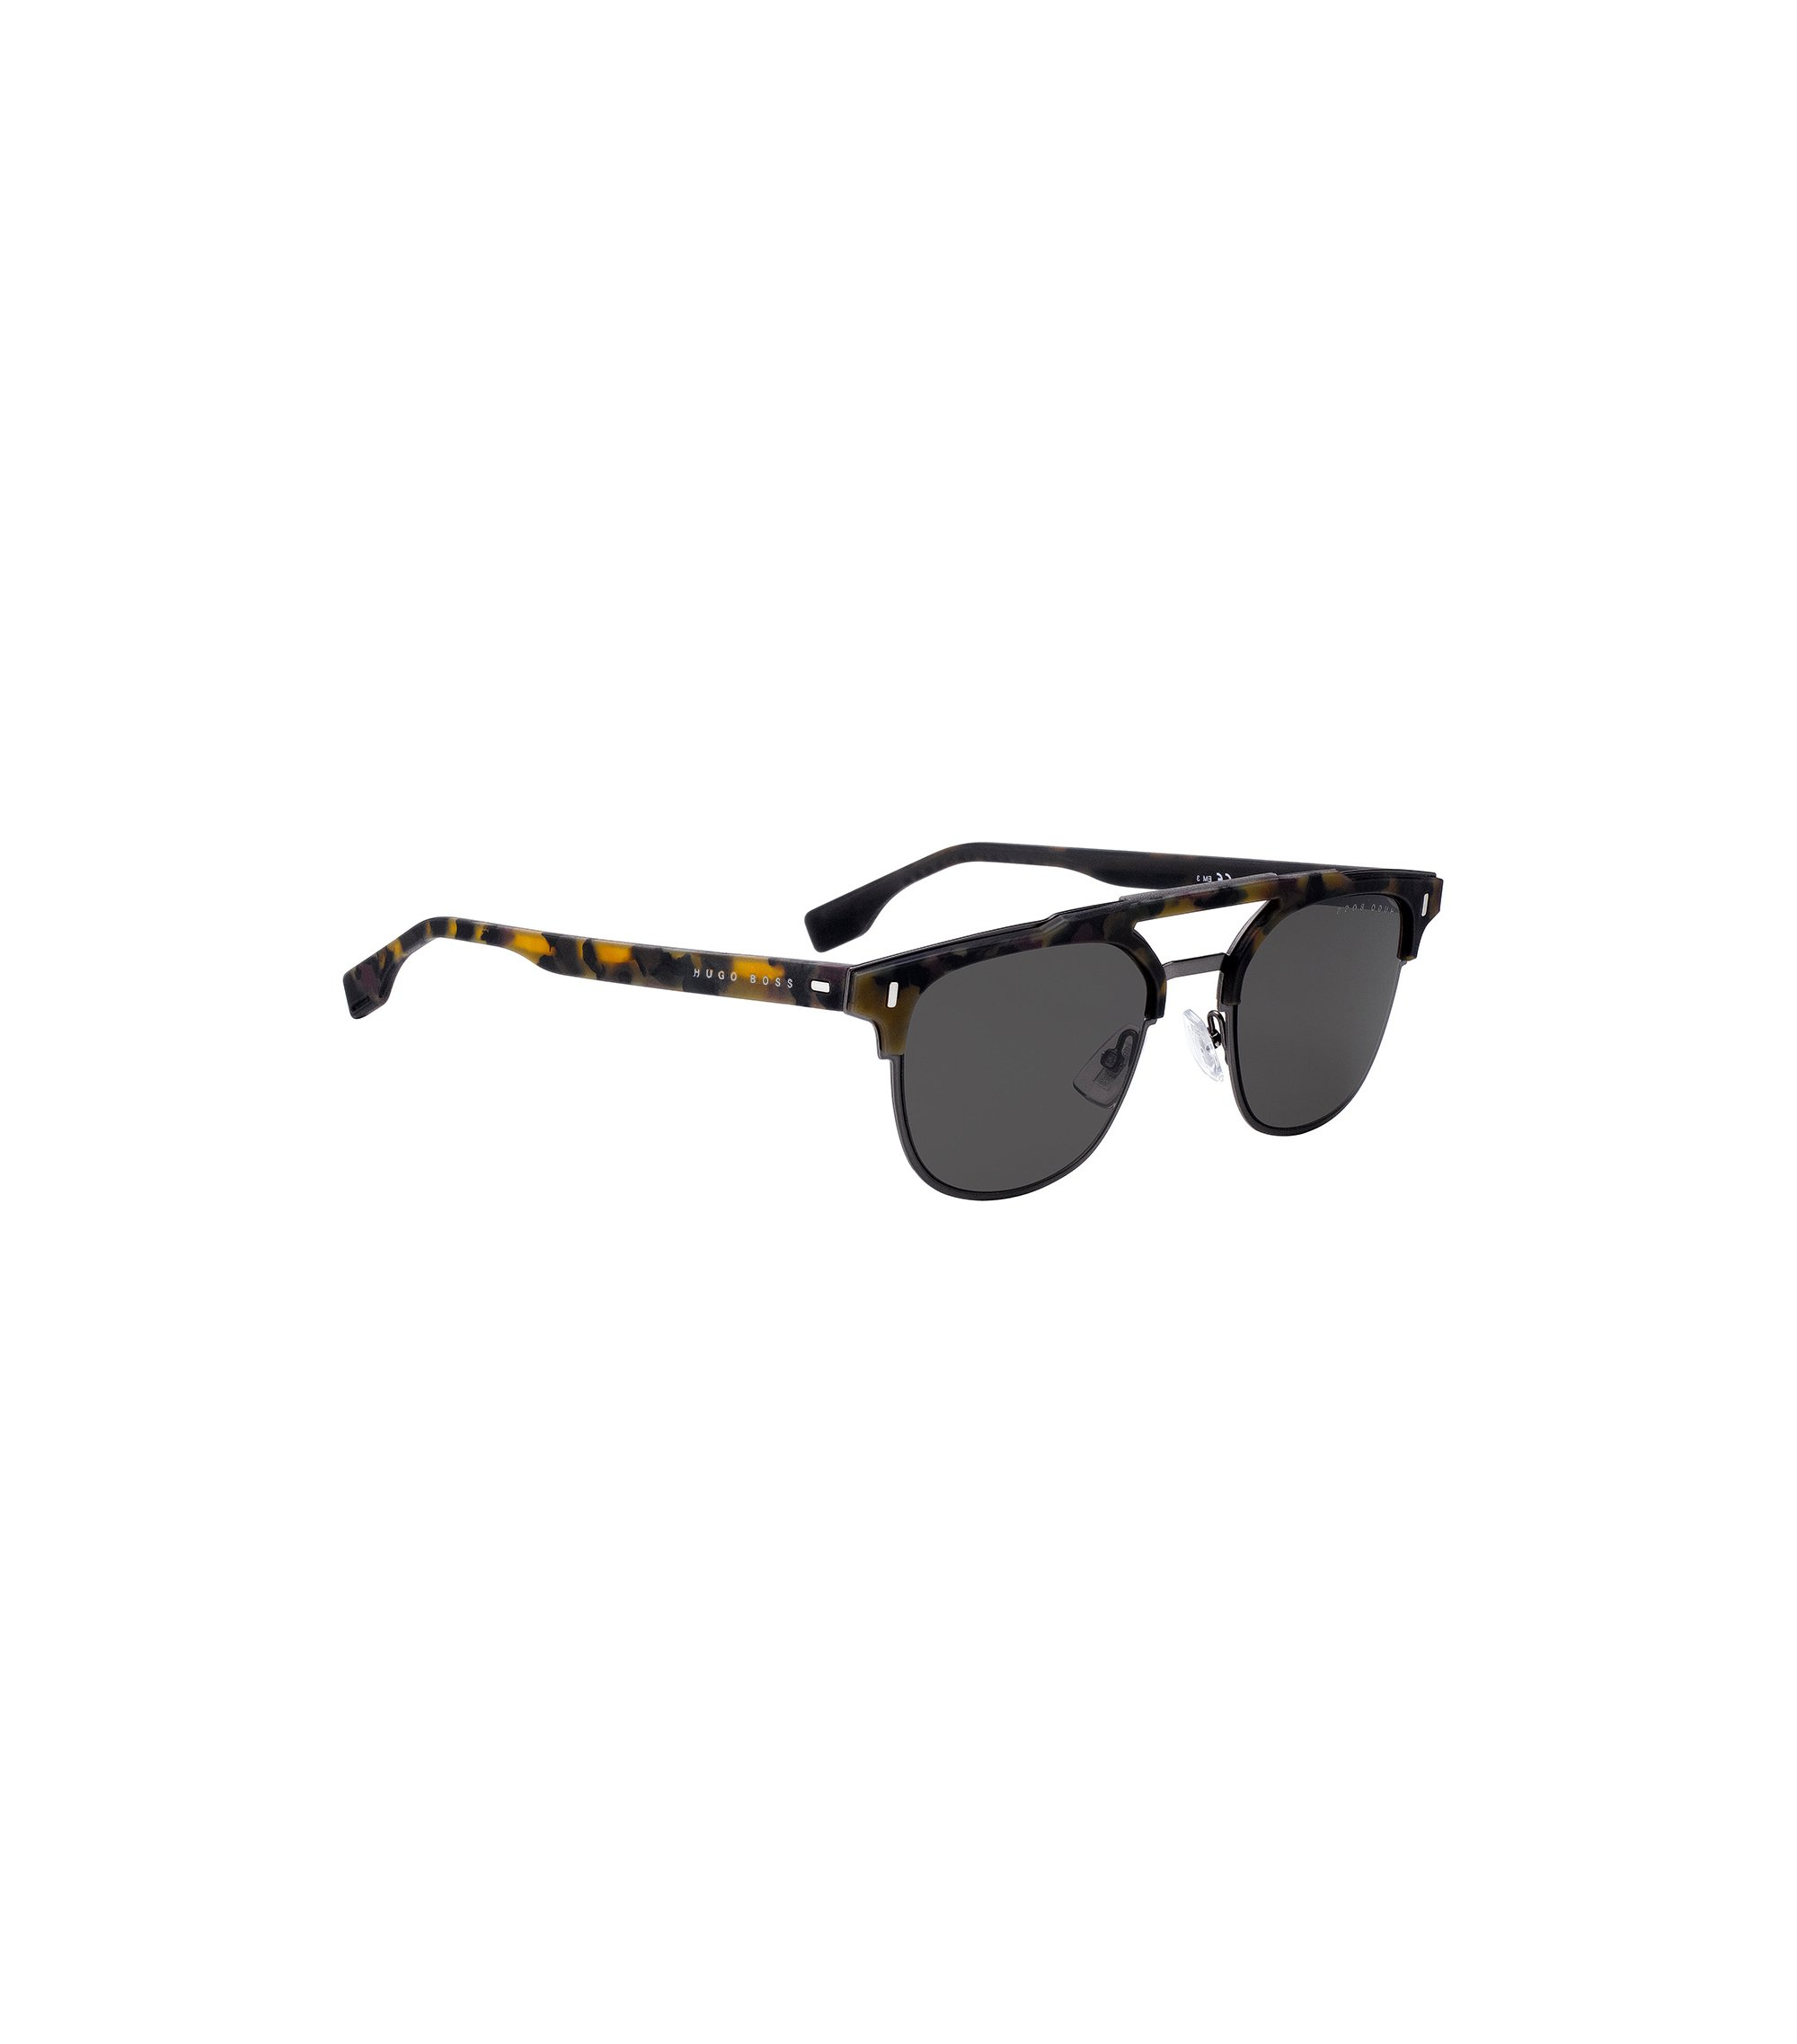 Rubberised-Havana sunglasses with riveted hinges, Patterned